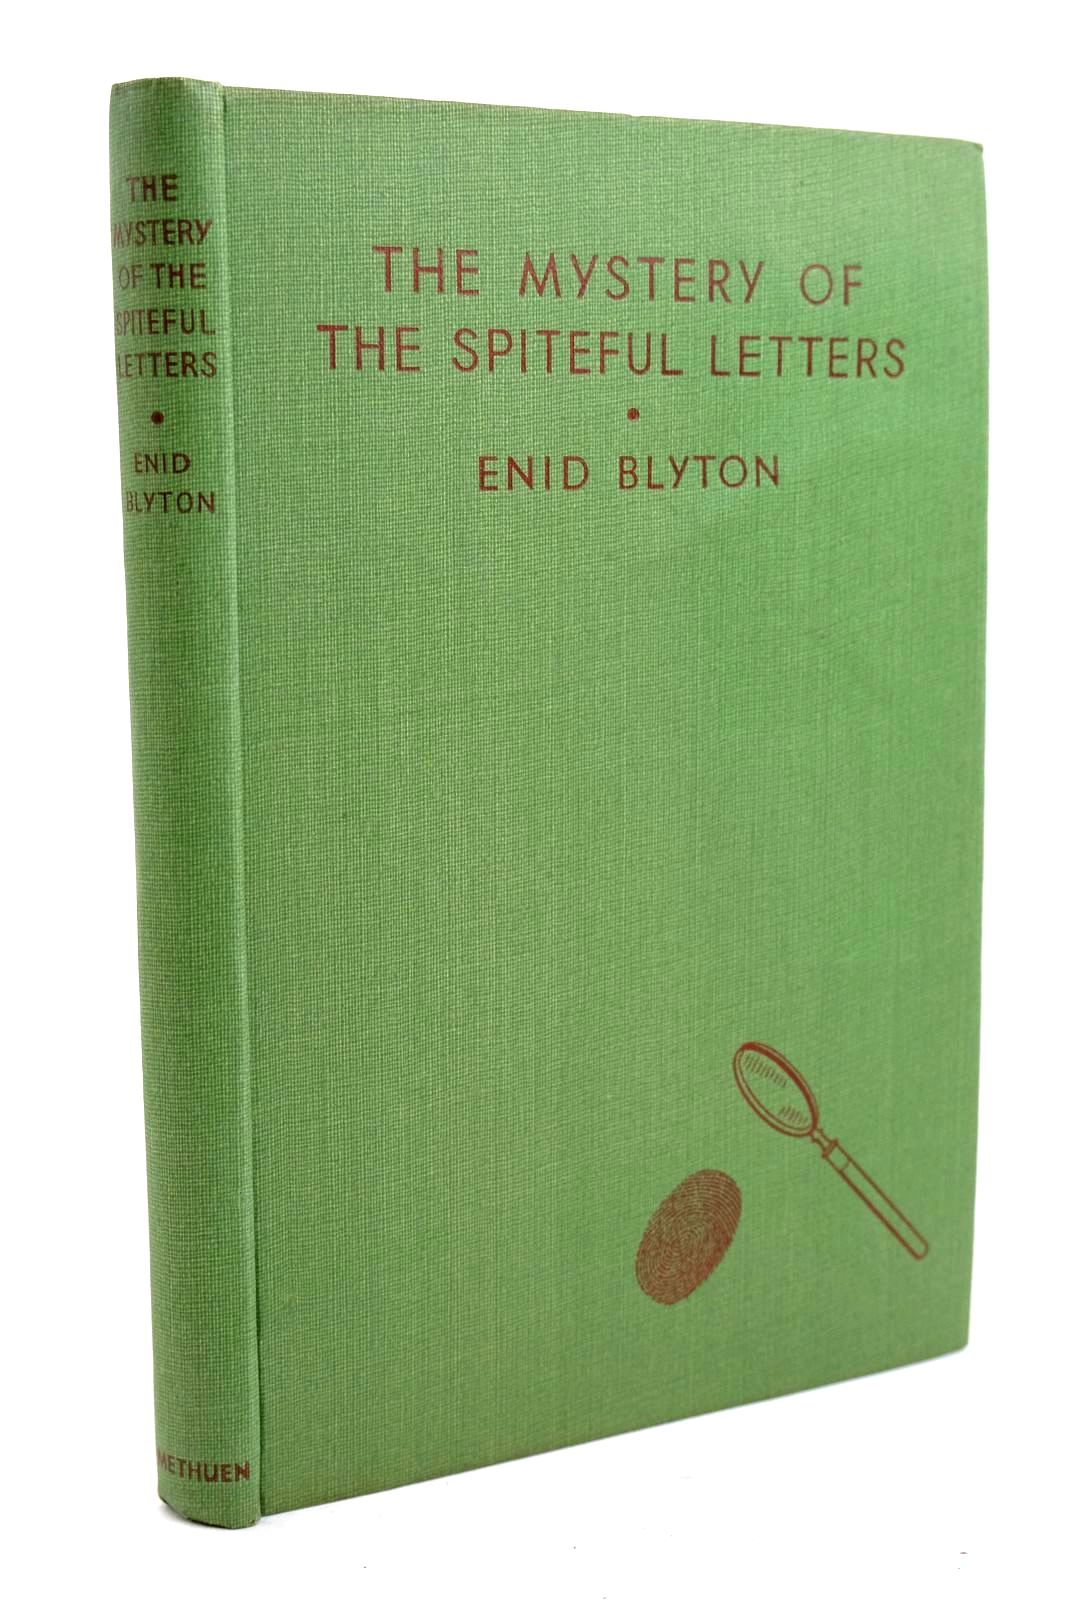 Photo of THE MYSTERY OF THE SPITEFUL LETTERS written by Blyton, Enid illustrated by Abbey, J. published by Methuen & Co. Ltd. (STOCK CODE: 1320313)  for sale by Stella & Rose's Books